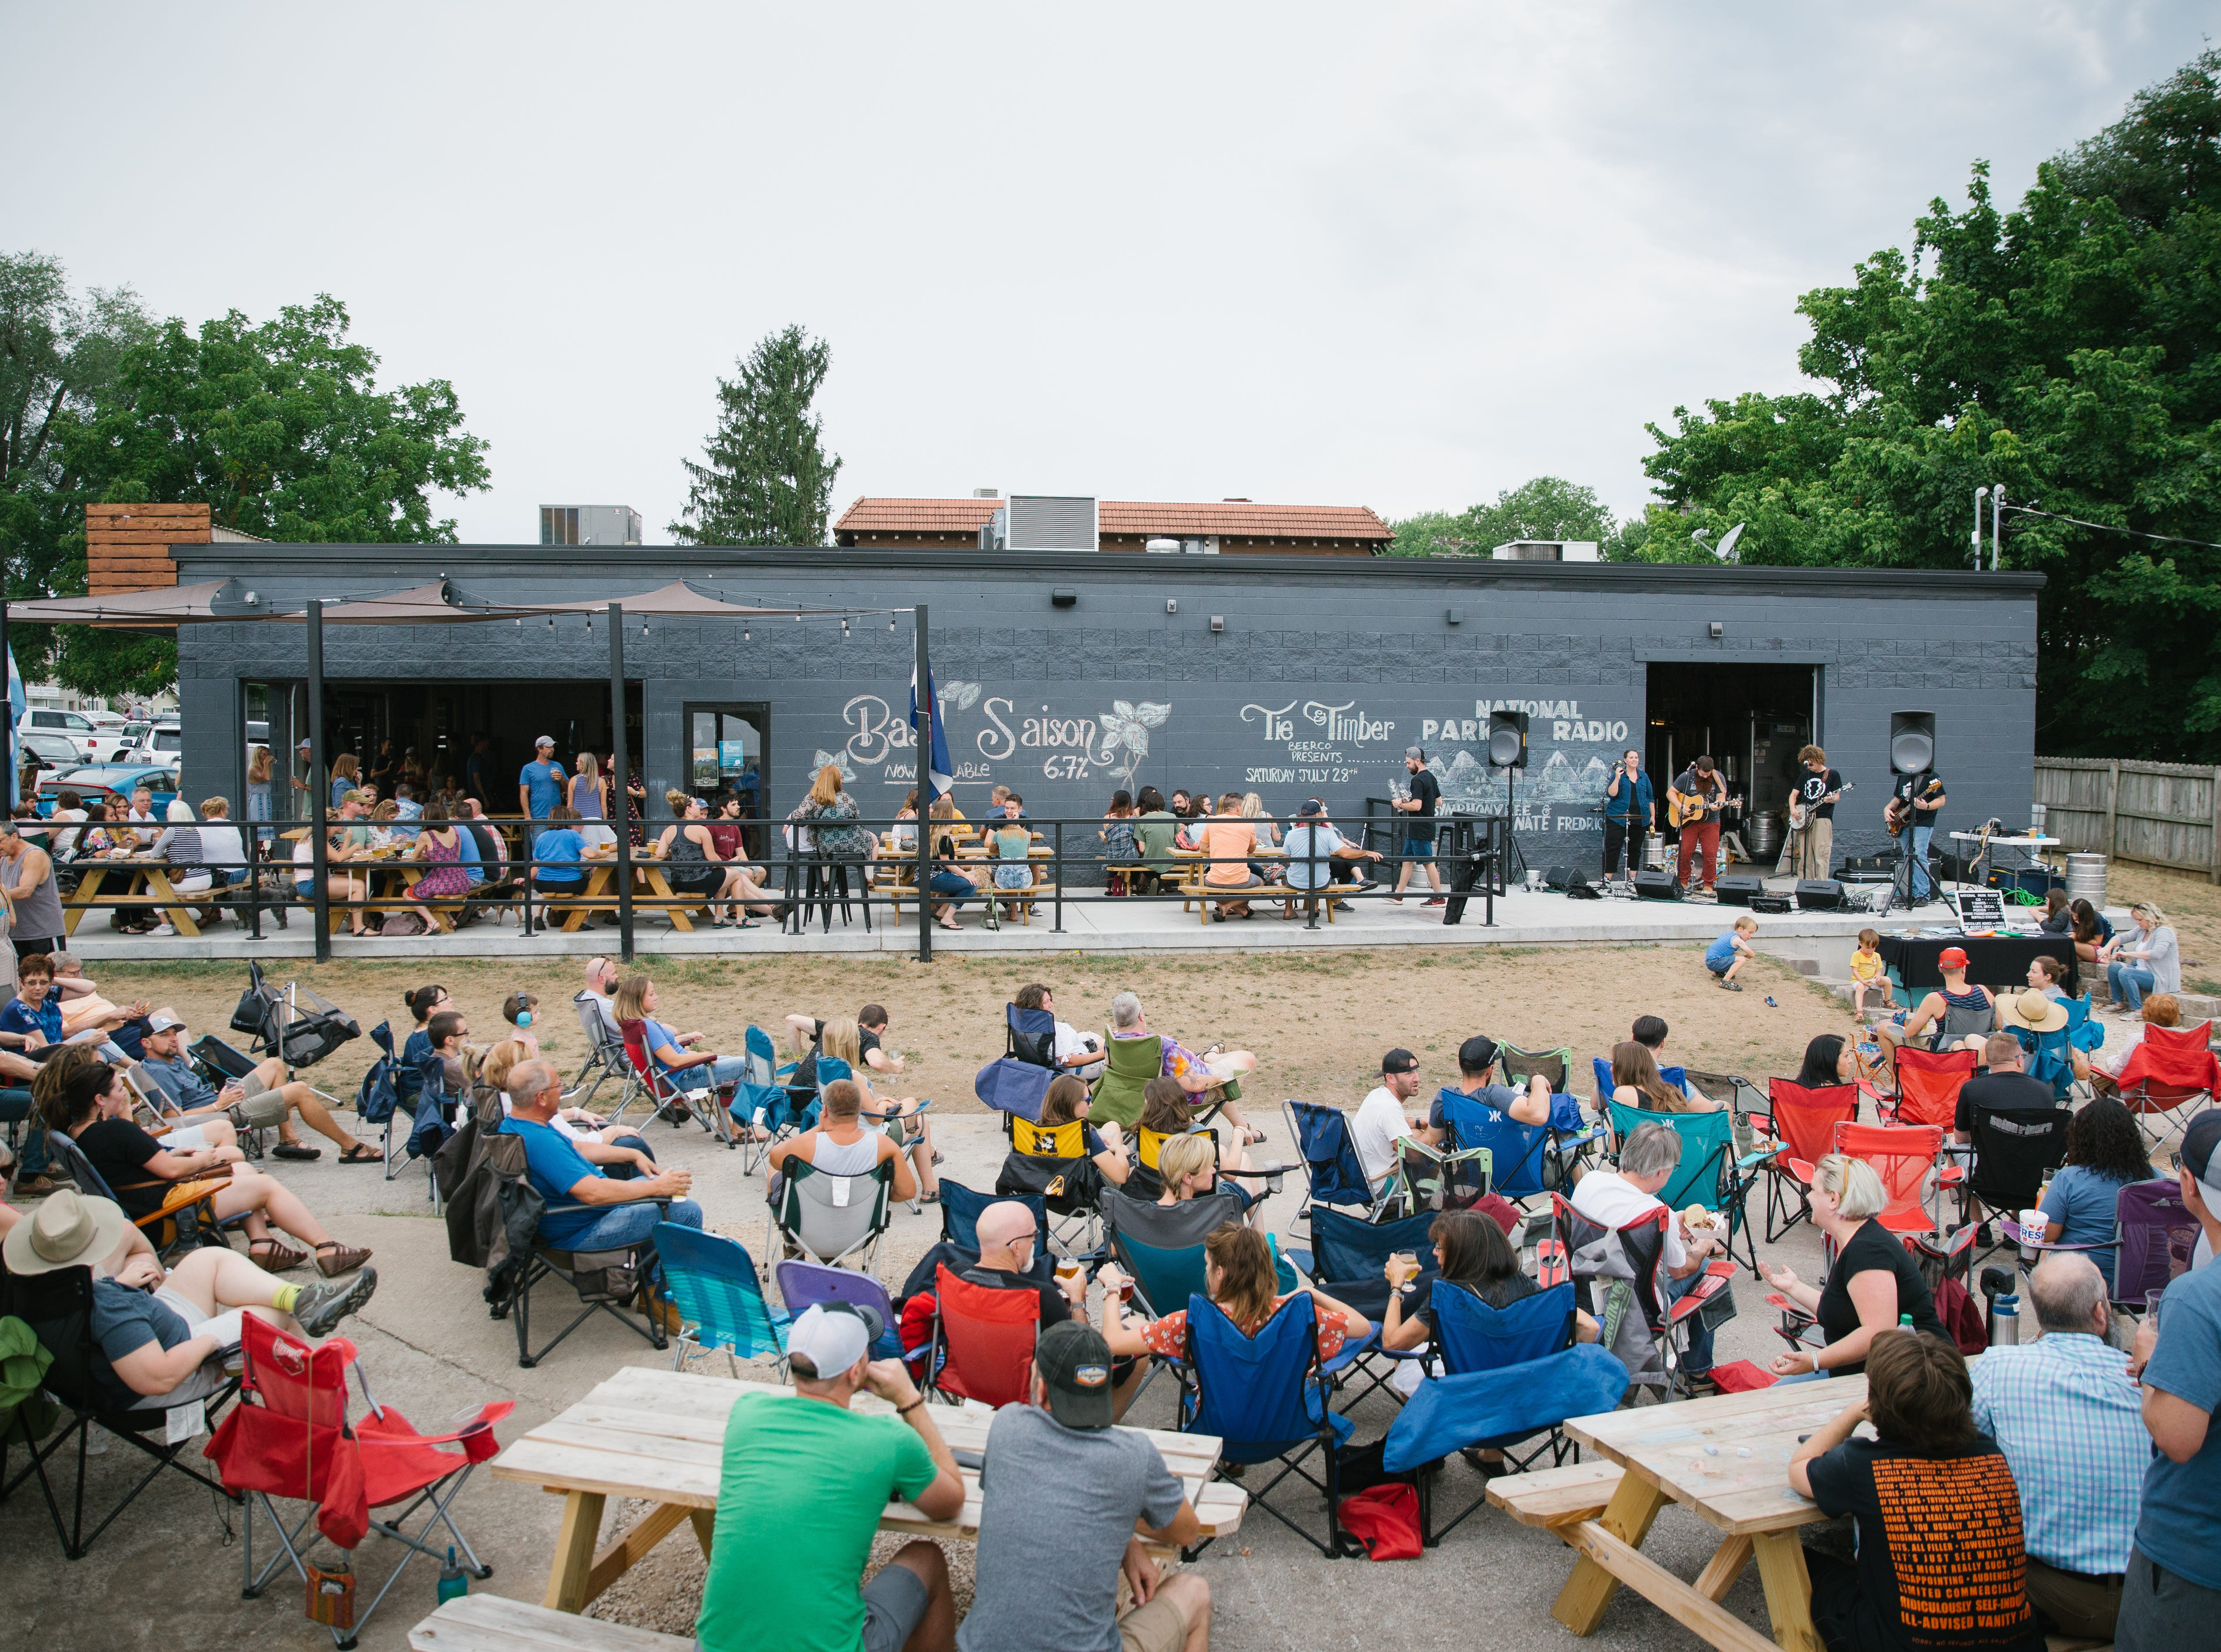 Tie & Timber's Dock Concert on  July 28, 2018 in Springfield. The brewery has quickly become a Rountree neighborhood gathering spot.